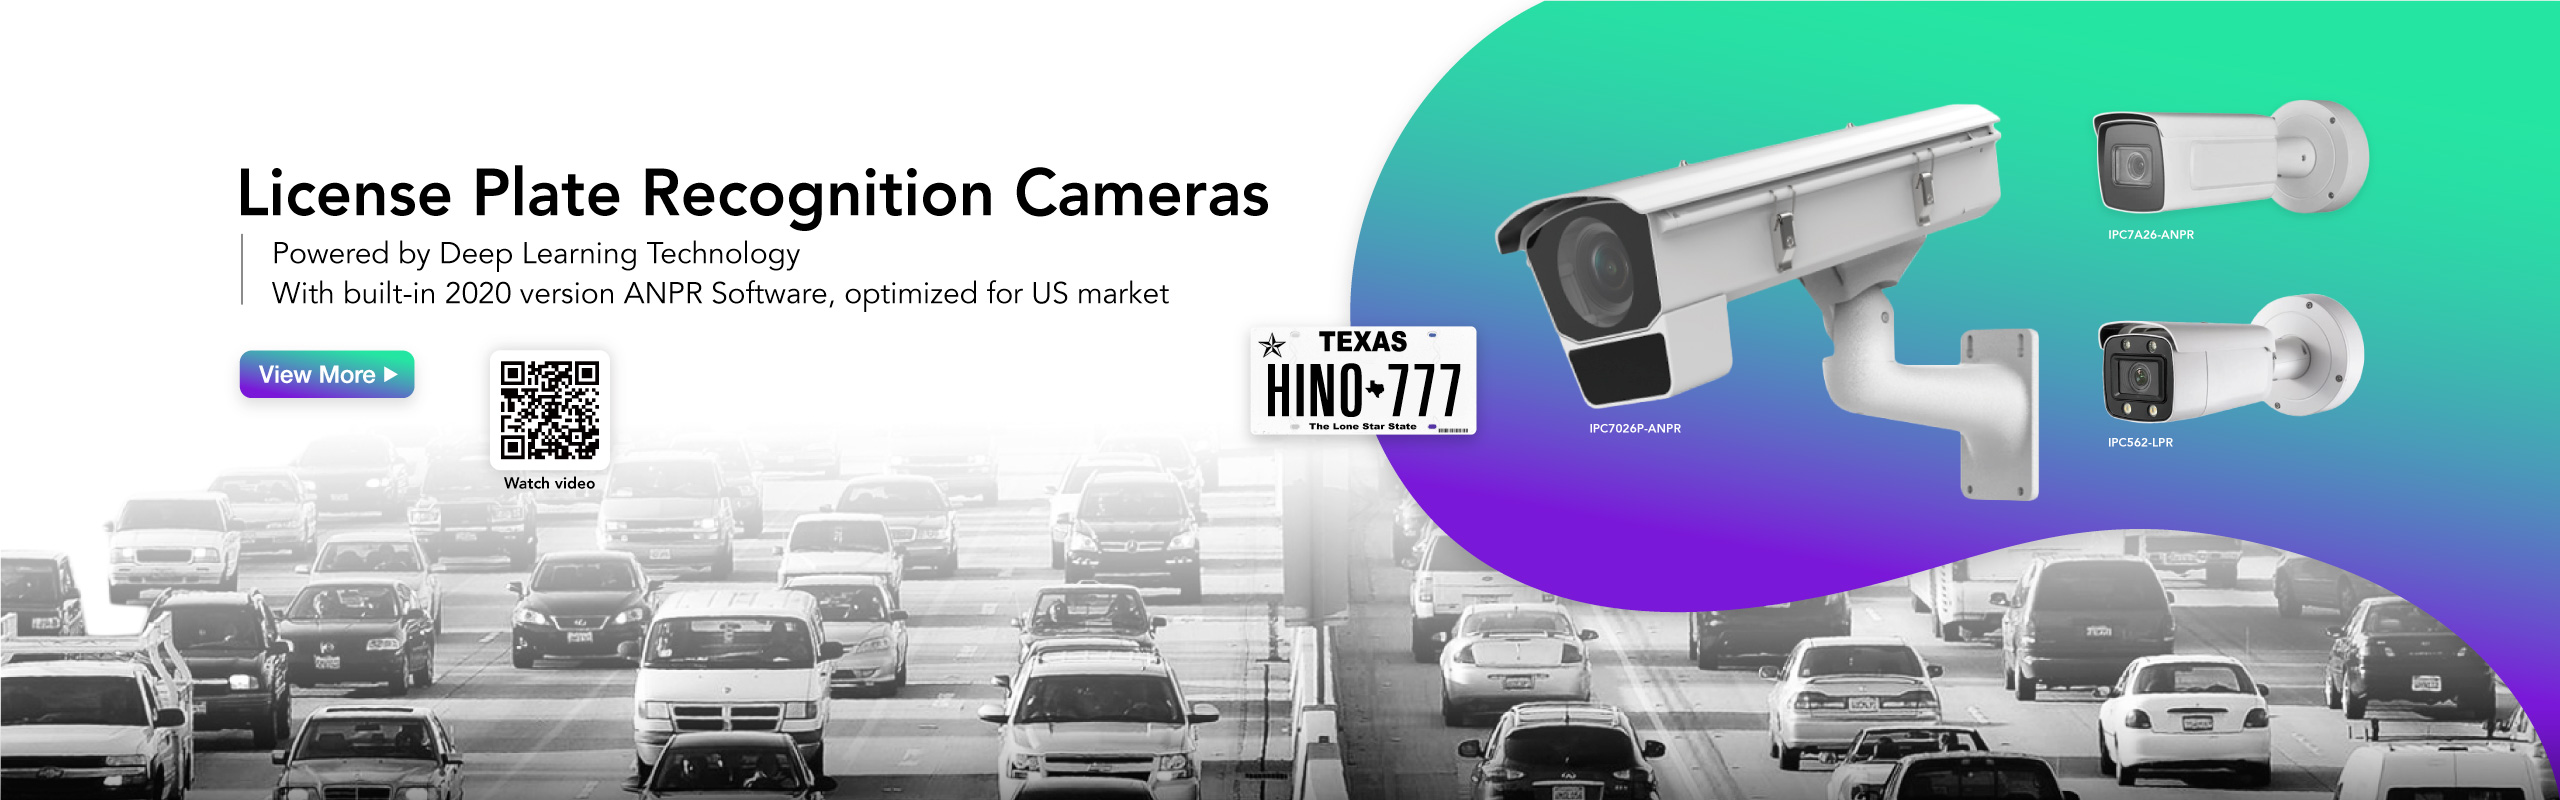 HINO New ANPR camera powered by Deep Learning